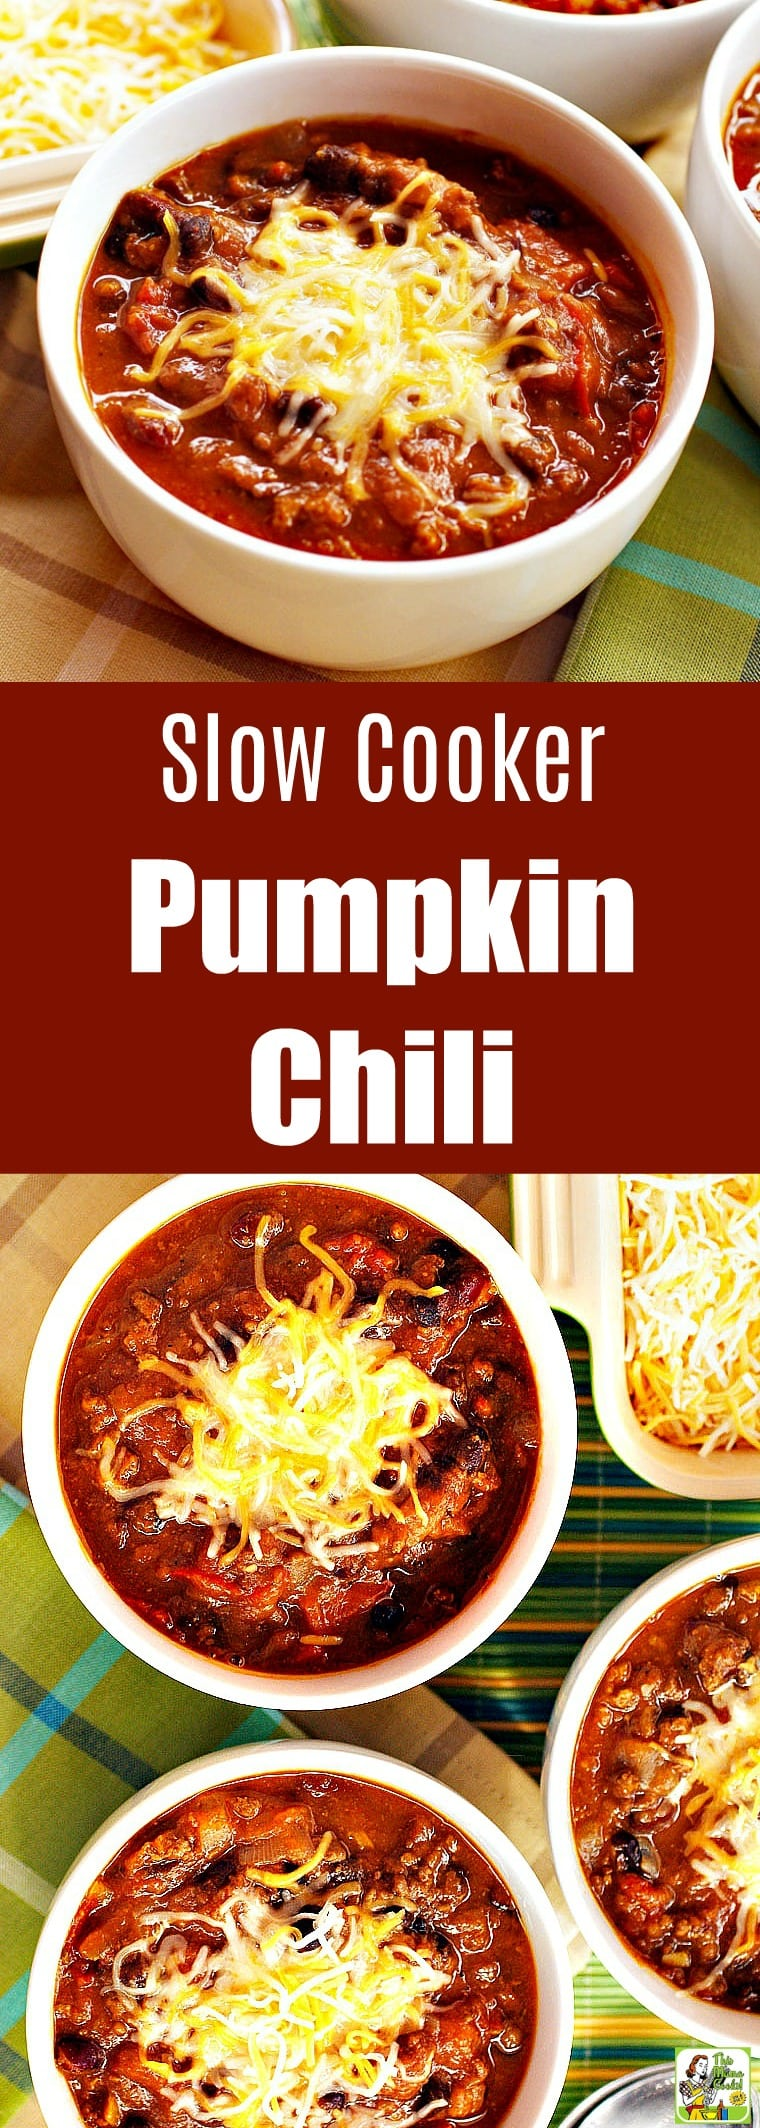 Slow Cooker Pumpkin Chili is an all around crowd-pleaser. This spicy turkey pumpkin chili is made with lean ground turkey, canned beans, and vegetables. #recipes #easy #recipeoftheday #glutenfree #easyrecipe #easyrecipes #glutenfreerecipes #dinner #easydinner #dinnerrecipes #dinnerideas #chili #beans #pumpkin #pumpkinrecipe #chili #turkey #slowcooker #slowcookerrecipes #crockpot #crockpotrecipes